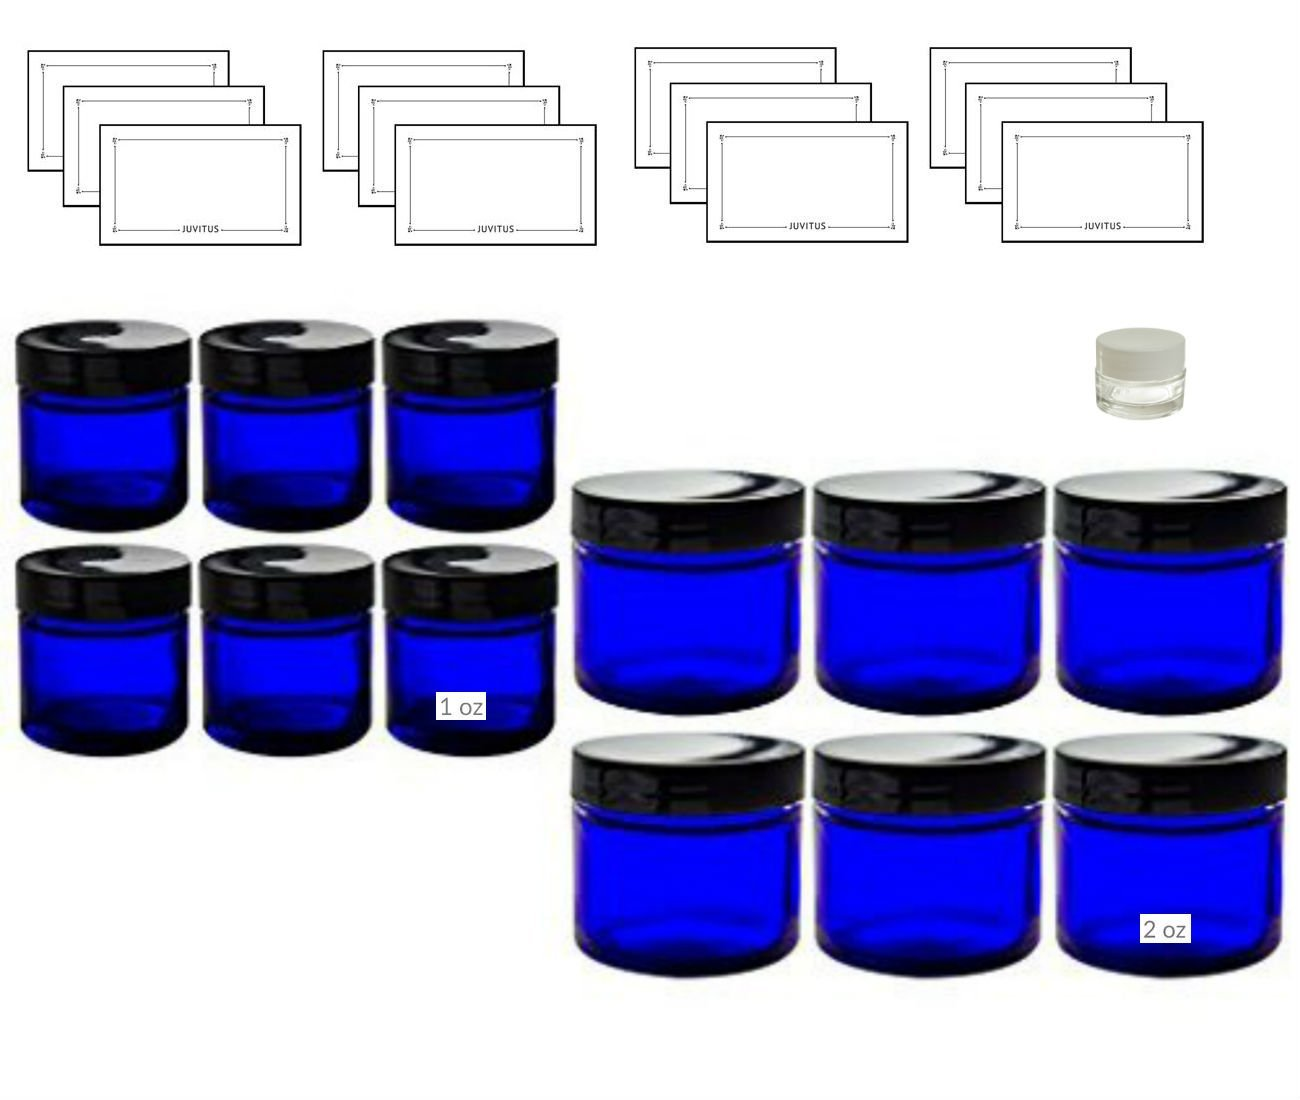 12 piece Cobalt Blue Glass Straight Sided Jar Starter Kit Set: 6 -1 oz Cobalt Glass Jars, 6 -2 oz Cobalt Glass Jars With Black Lids + a Small Glass Balm Jar and Labels